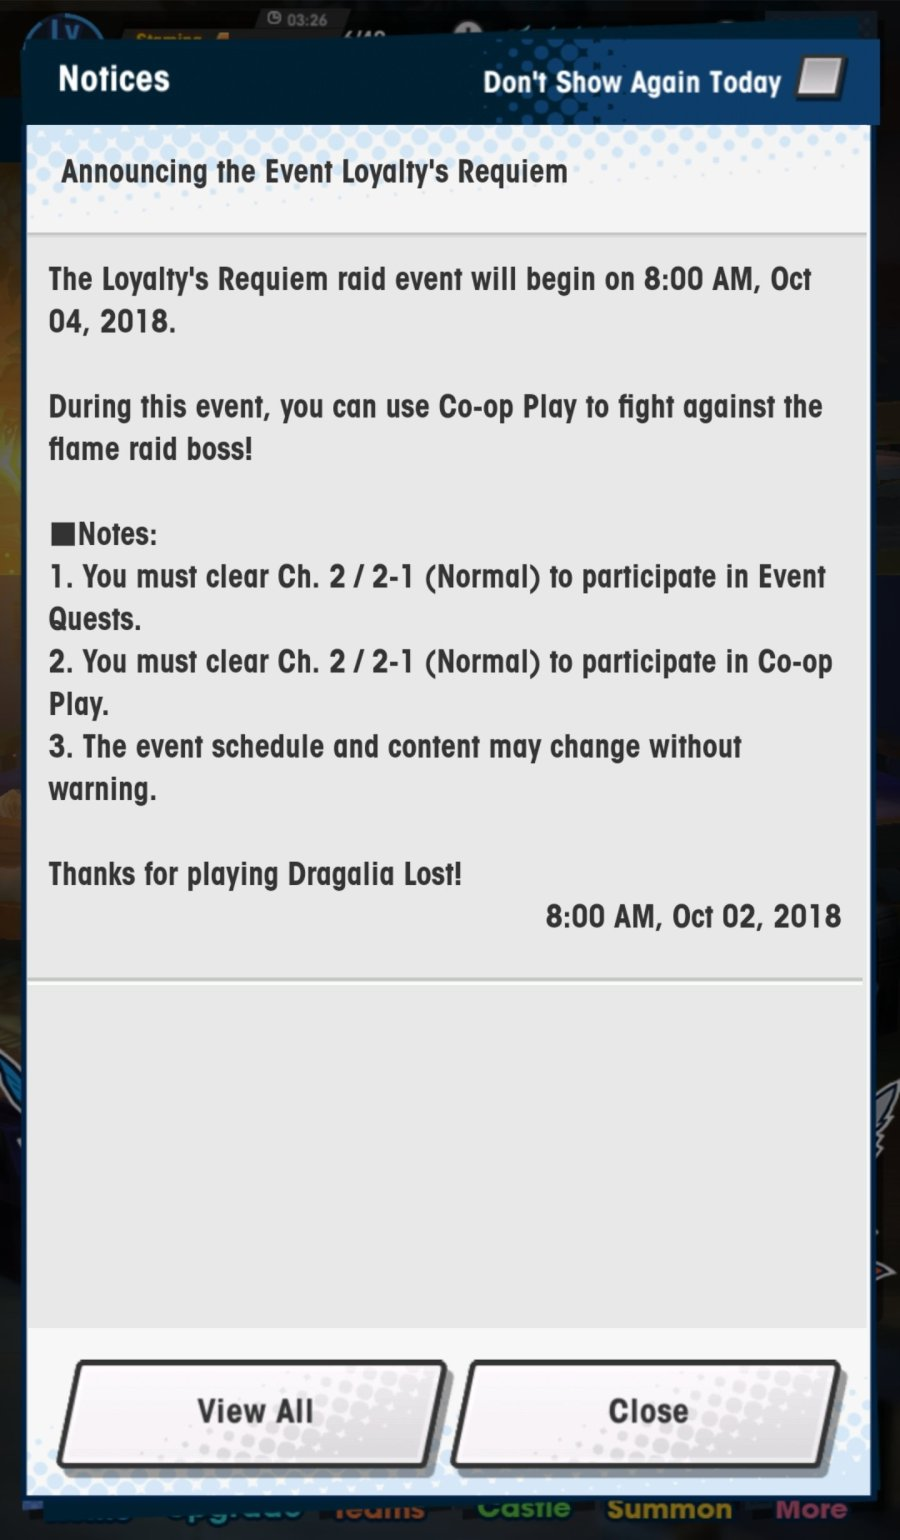 Dragalia Lost Loyalty's Requiem Raid Event